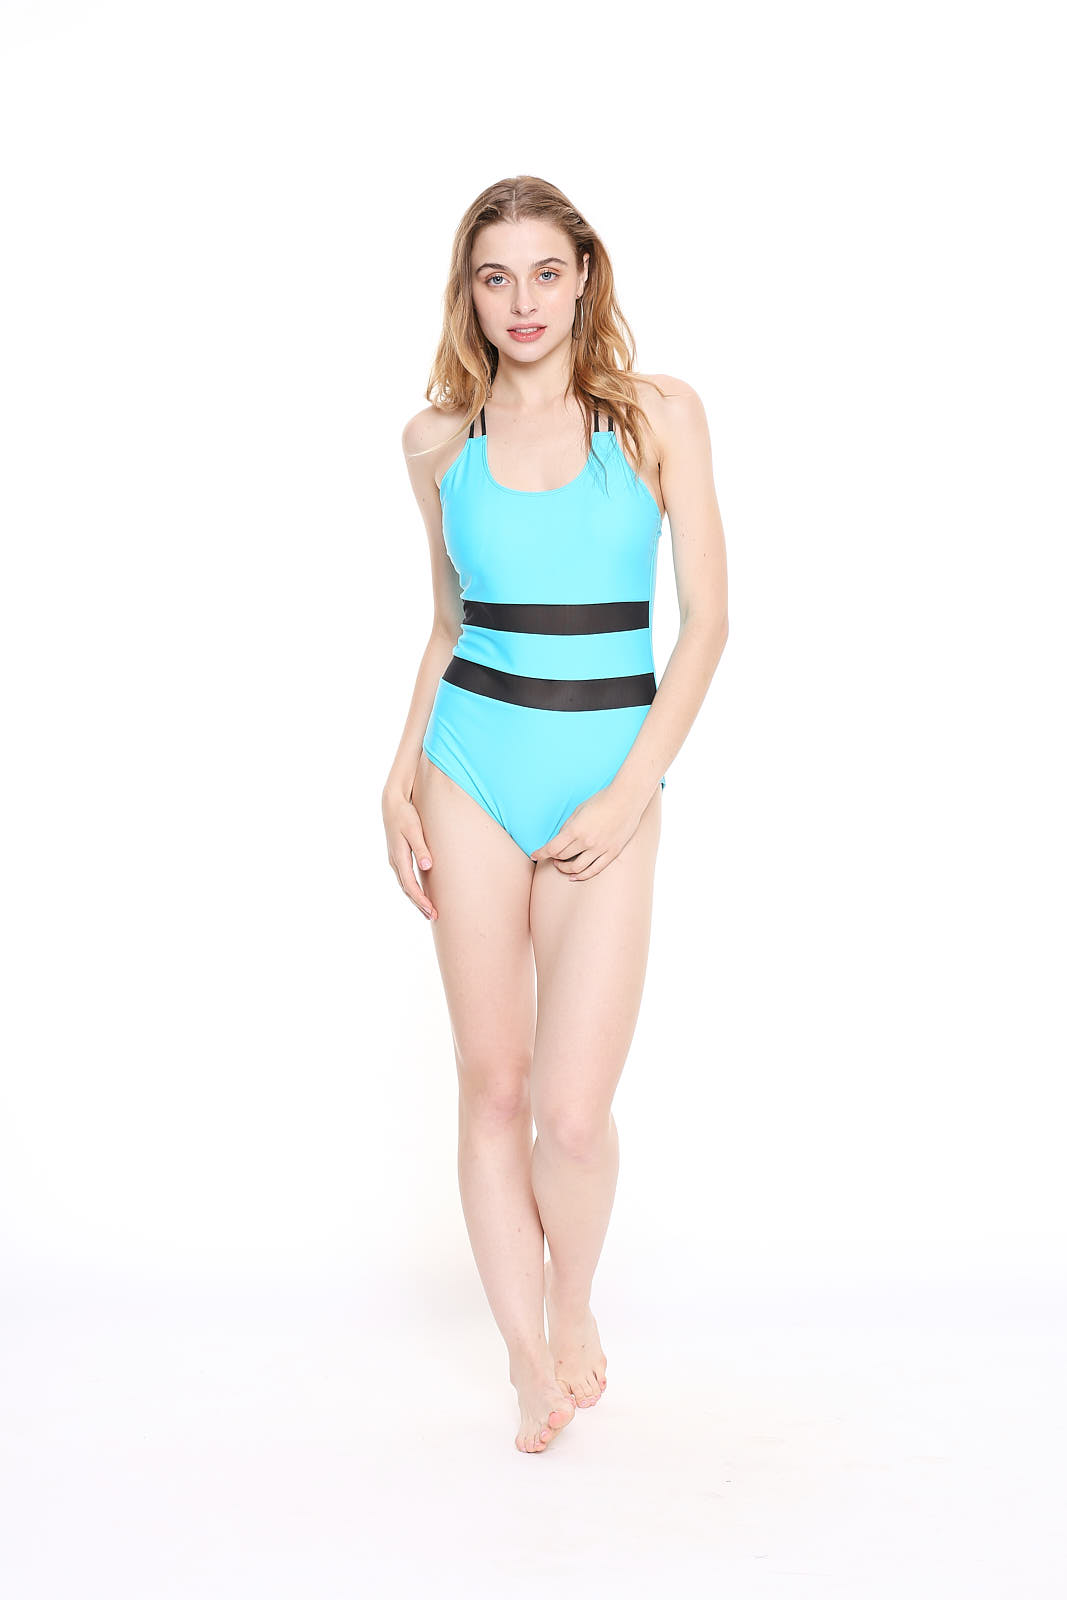 TURQUOISE MESH CROSSBACK SWIMSUIT Turquoise - XS - Body Fit (Turquoise, S, Body Fit)